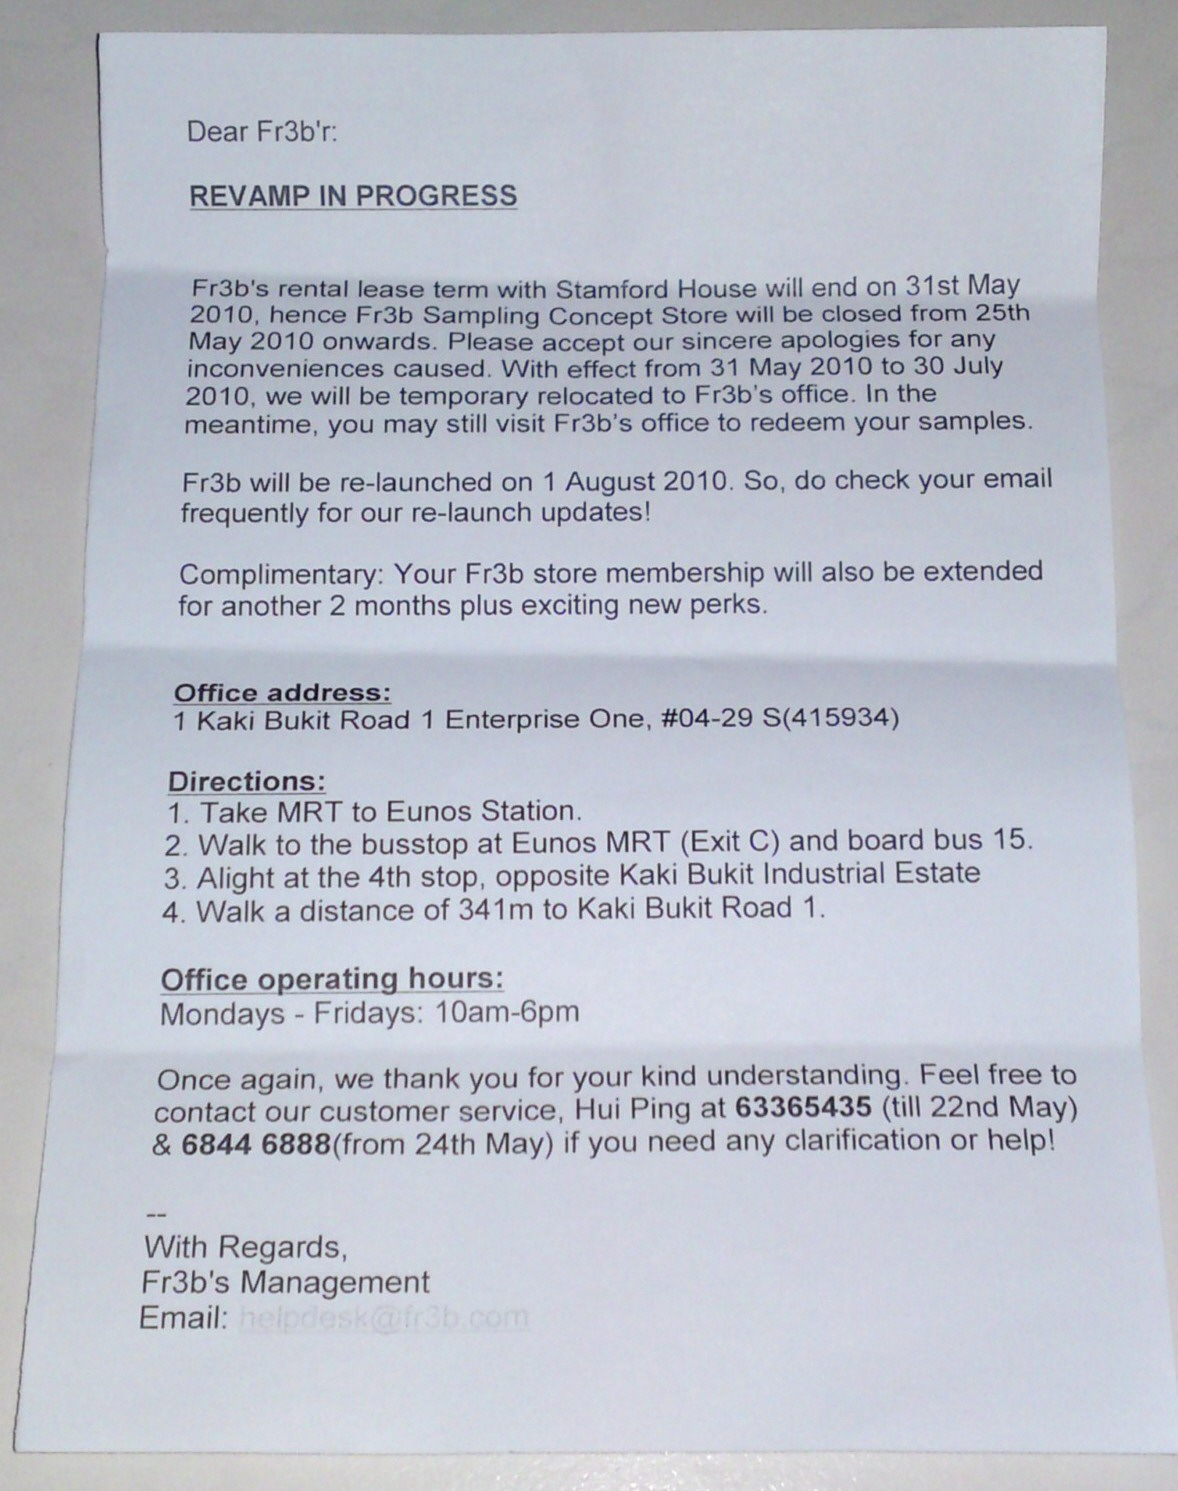 Sample redemption letter How to